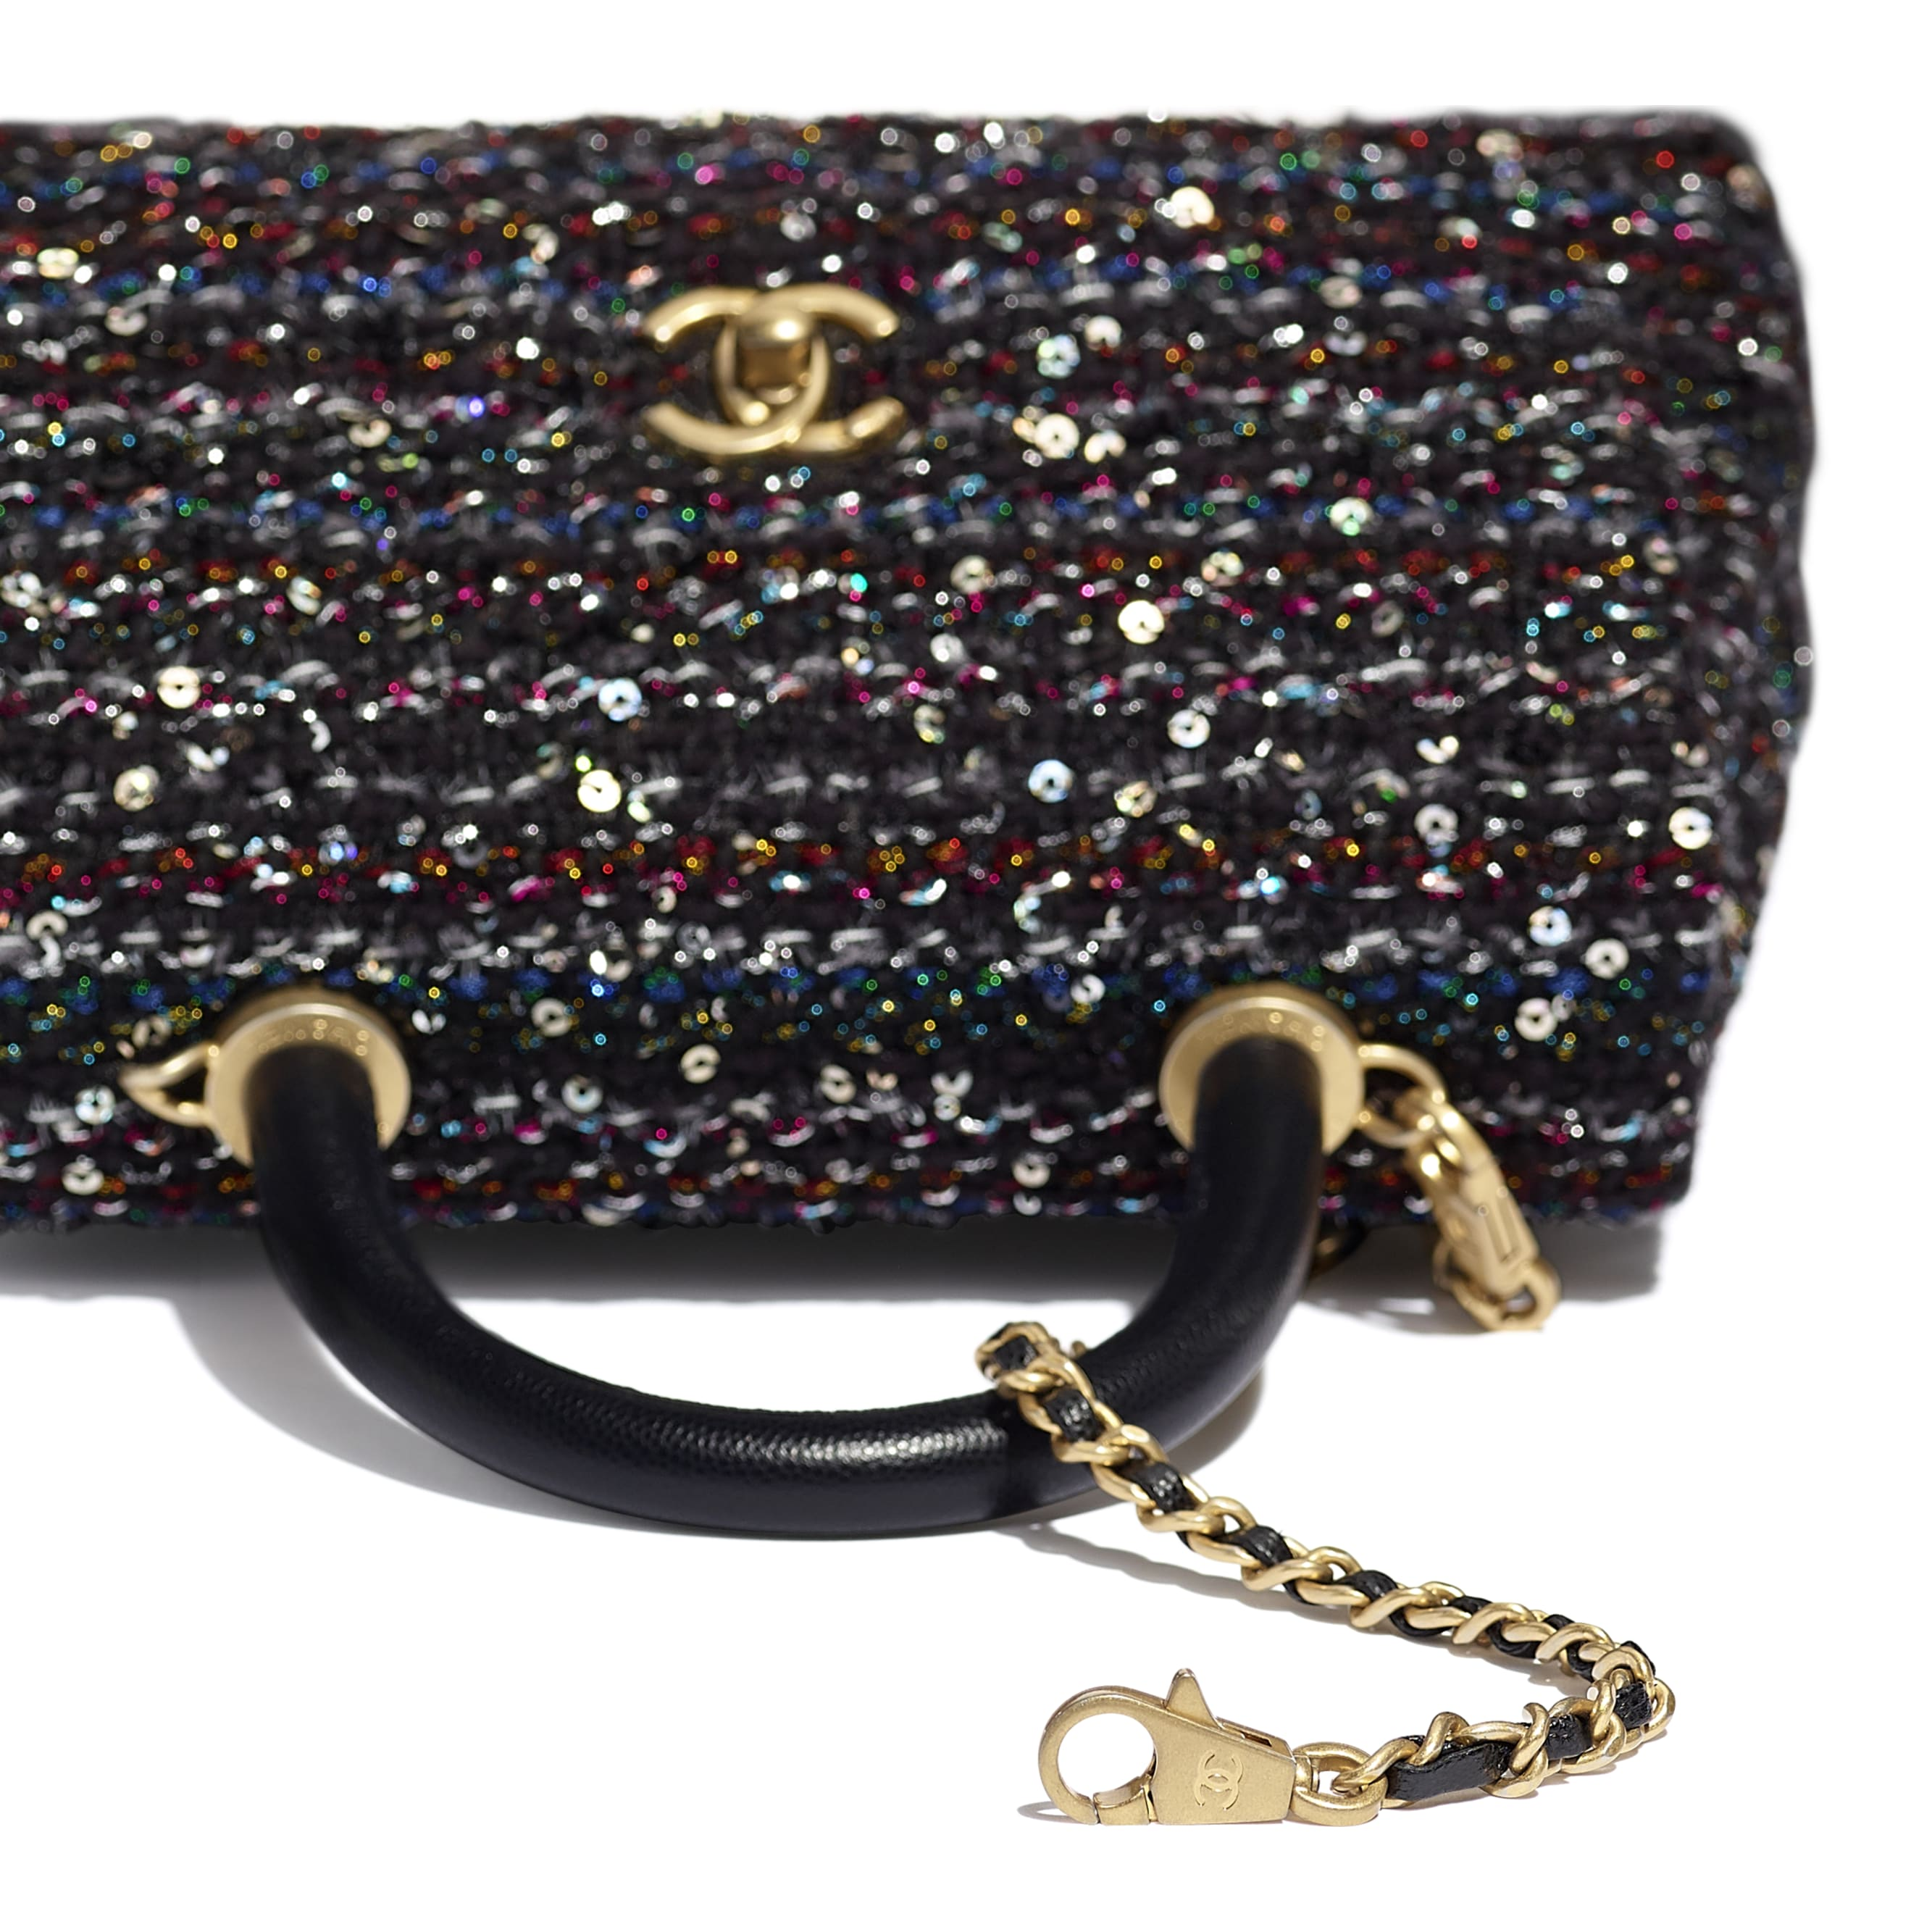 Small Flap Bag With Top Handle - Black, Silver, Blue & Red - Tweed, Grained Calfskin & Gold-Tone Metal - CHANEL - Extra view - see standard sized version